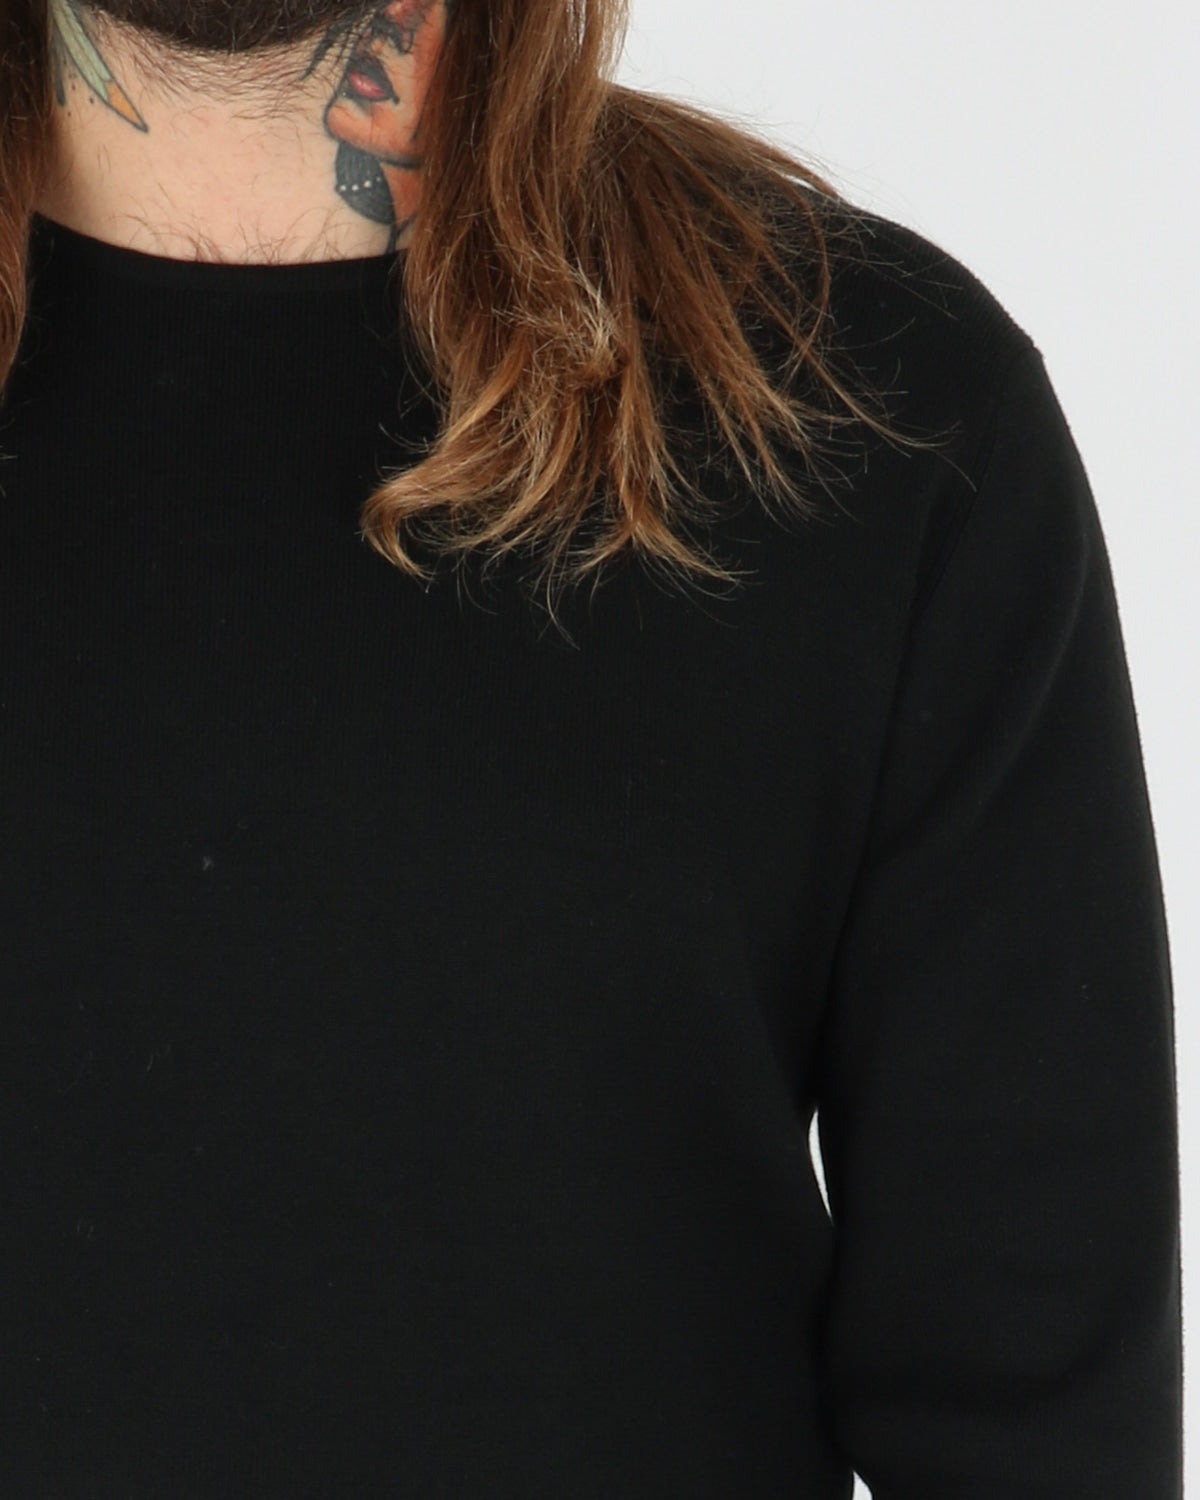 legends_cofu pullover_black_3_3